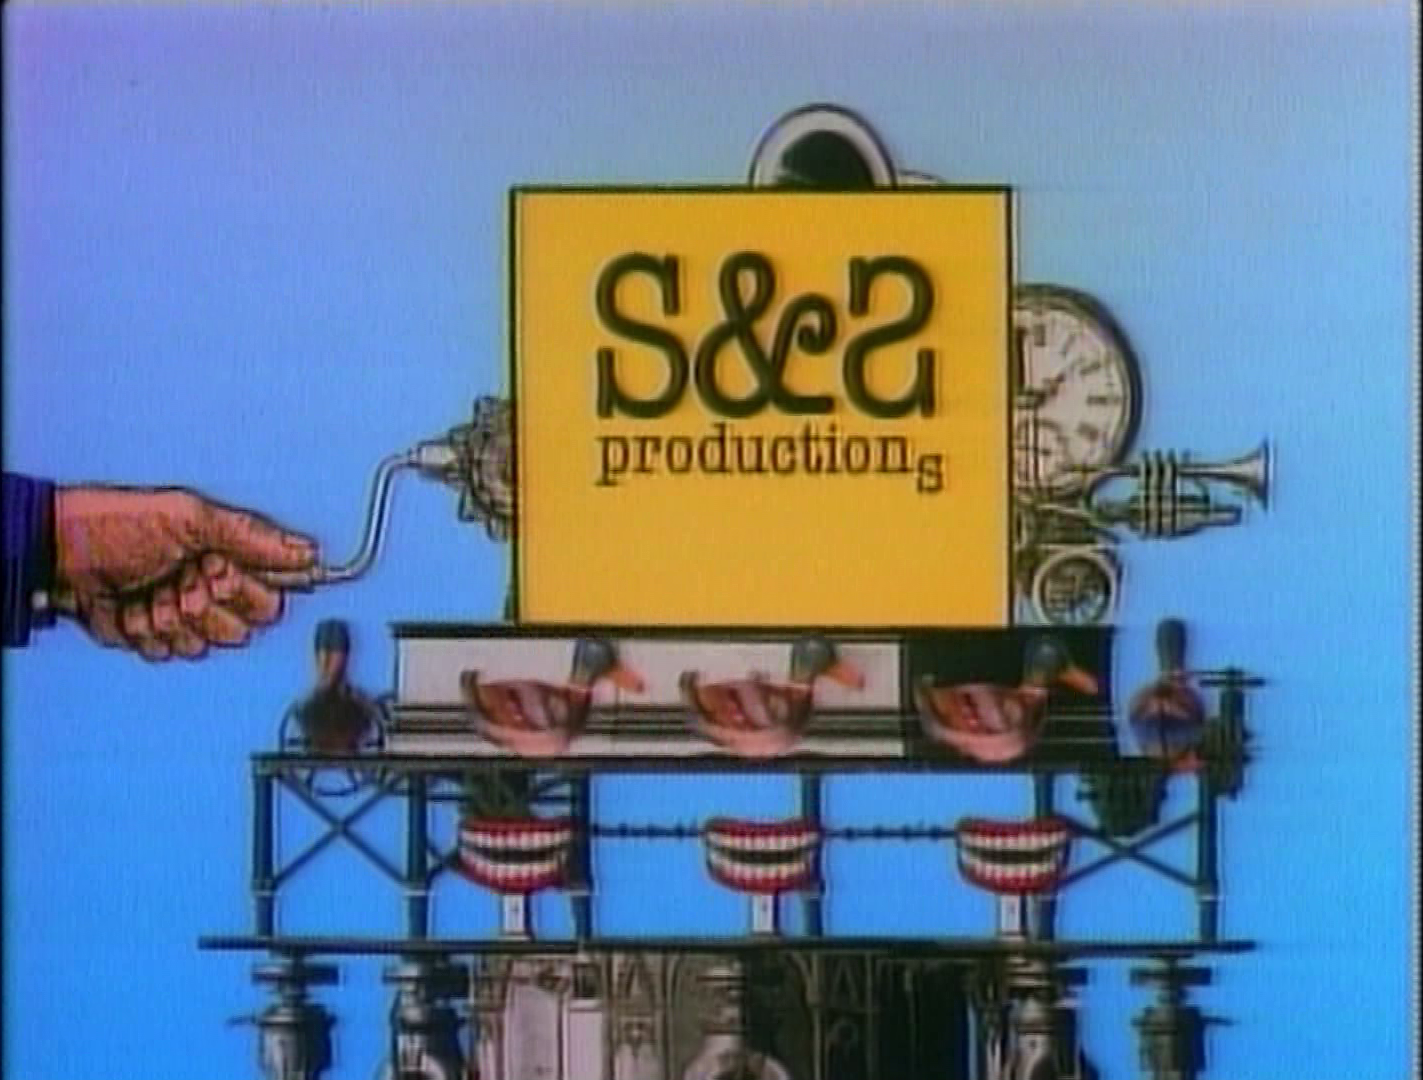 S&S Productions (January 28, 1995)